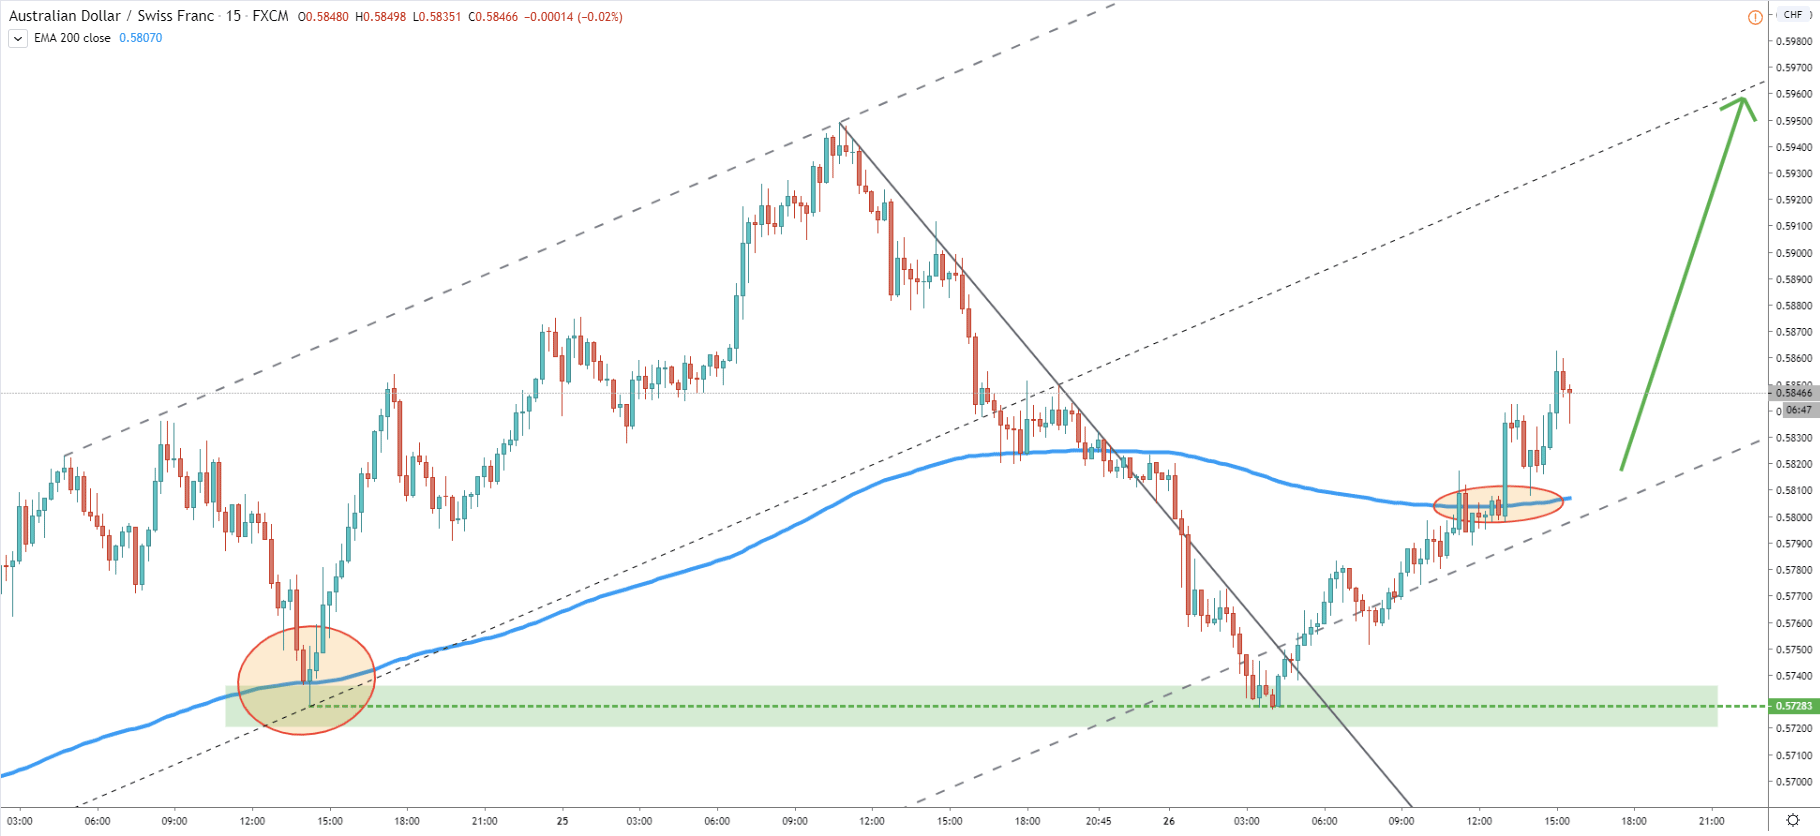 AUD/CHF 15-Minute Technical Analysis 26 Mar 2020